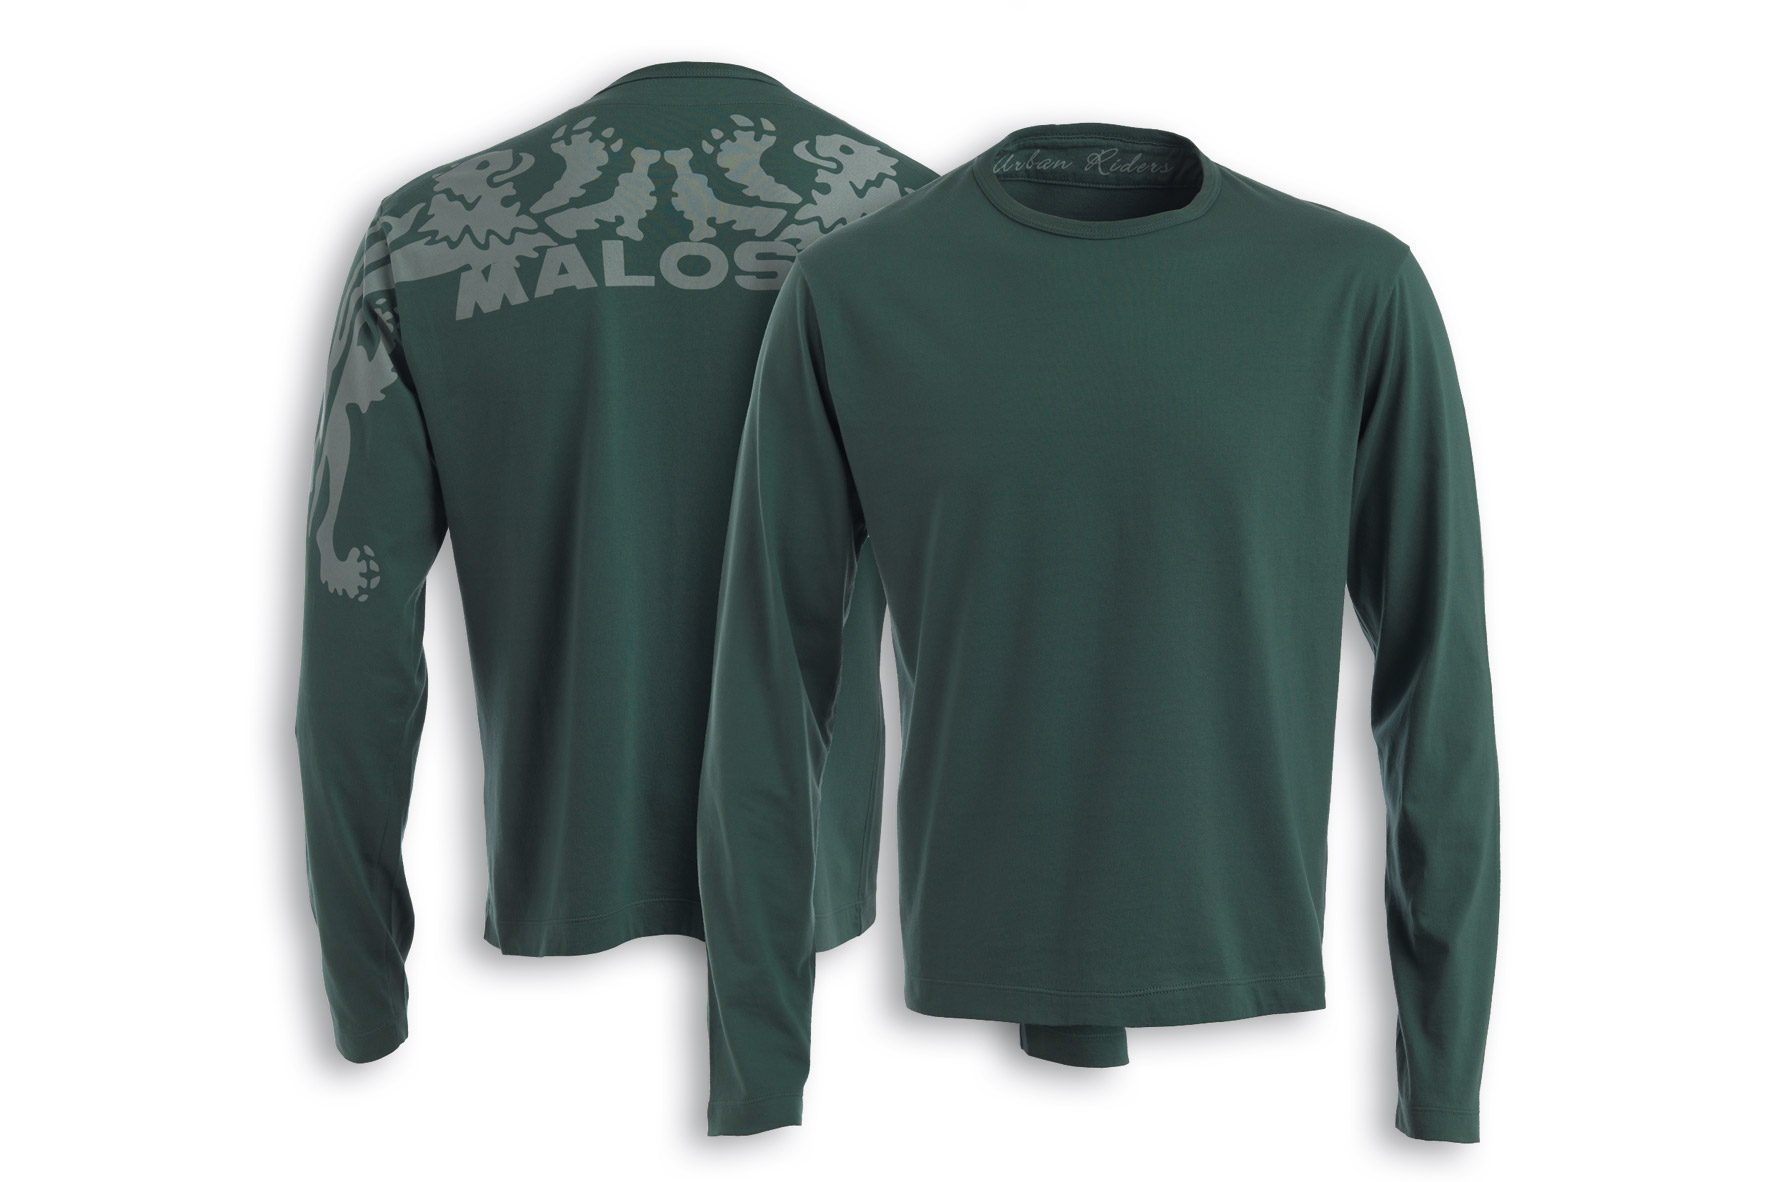 MILIT. GREEN T-SHIRT MALOSSI griffe (LONG sleeve) - START ( S )